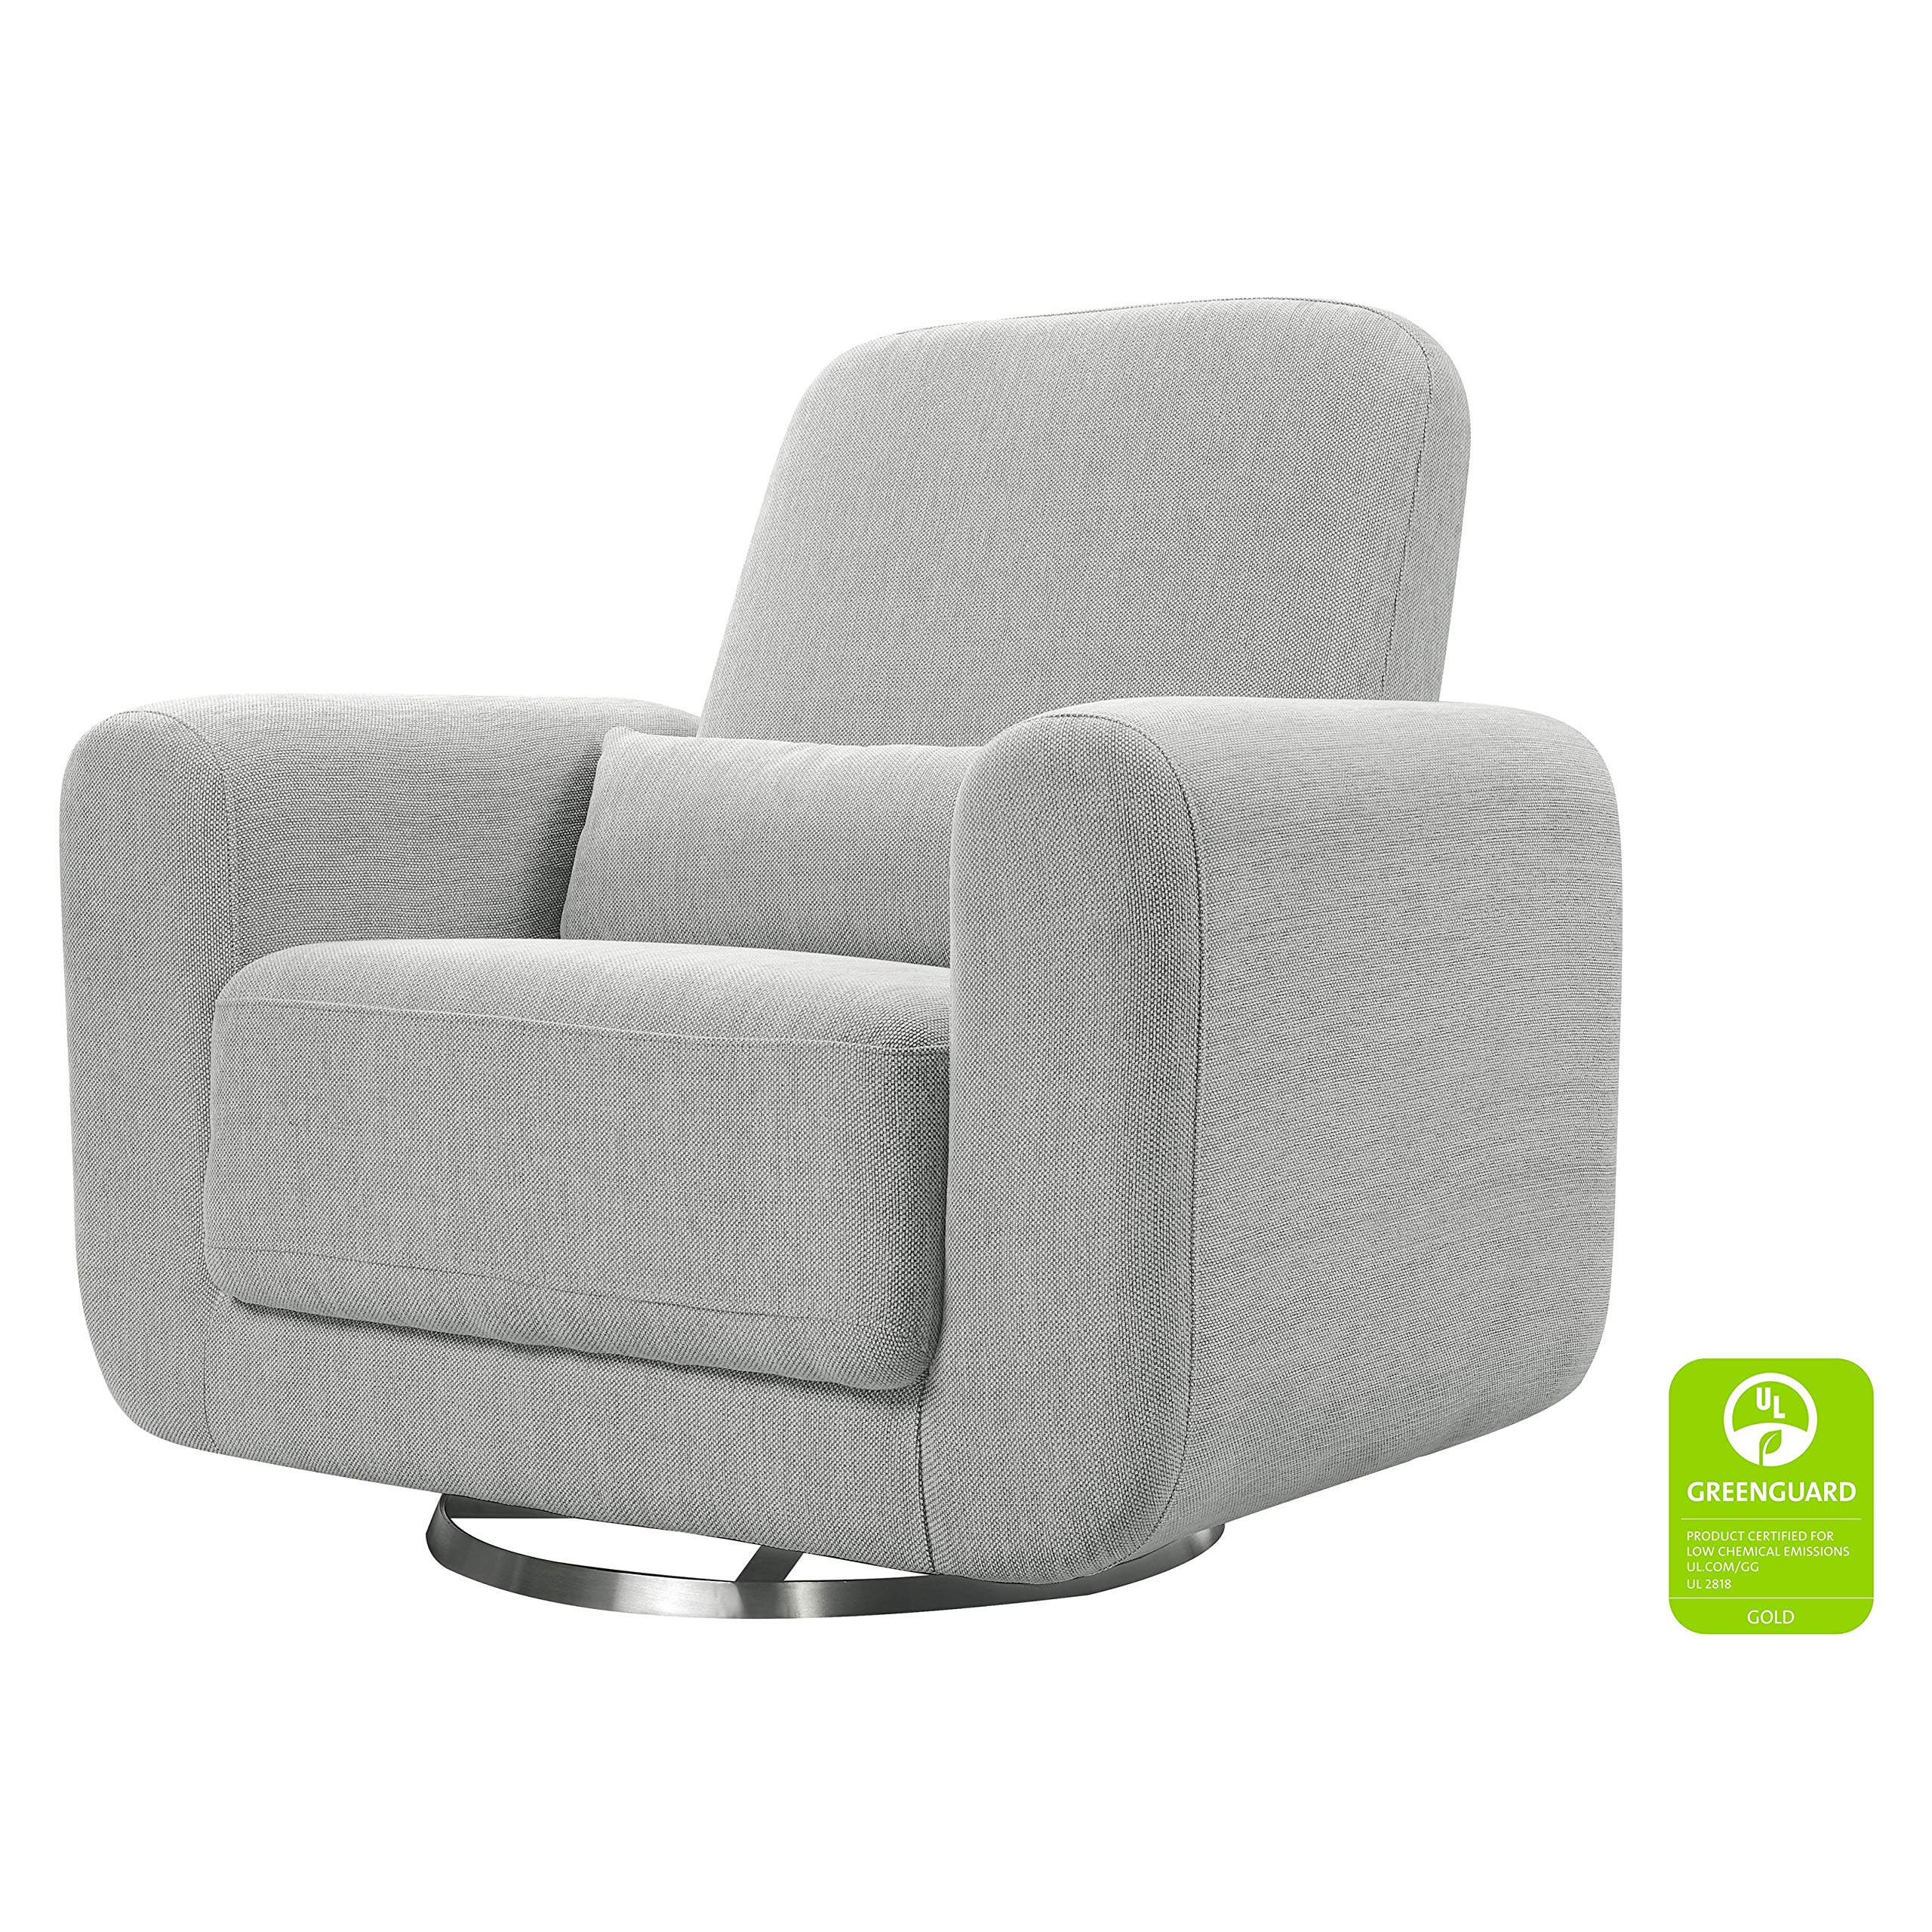 Babyletto Tuba Extra Wide Swivel Glider, Winter Grey Weave by Babyletto